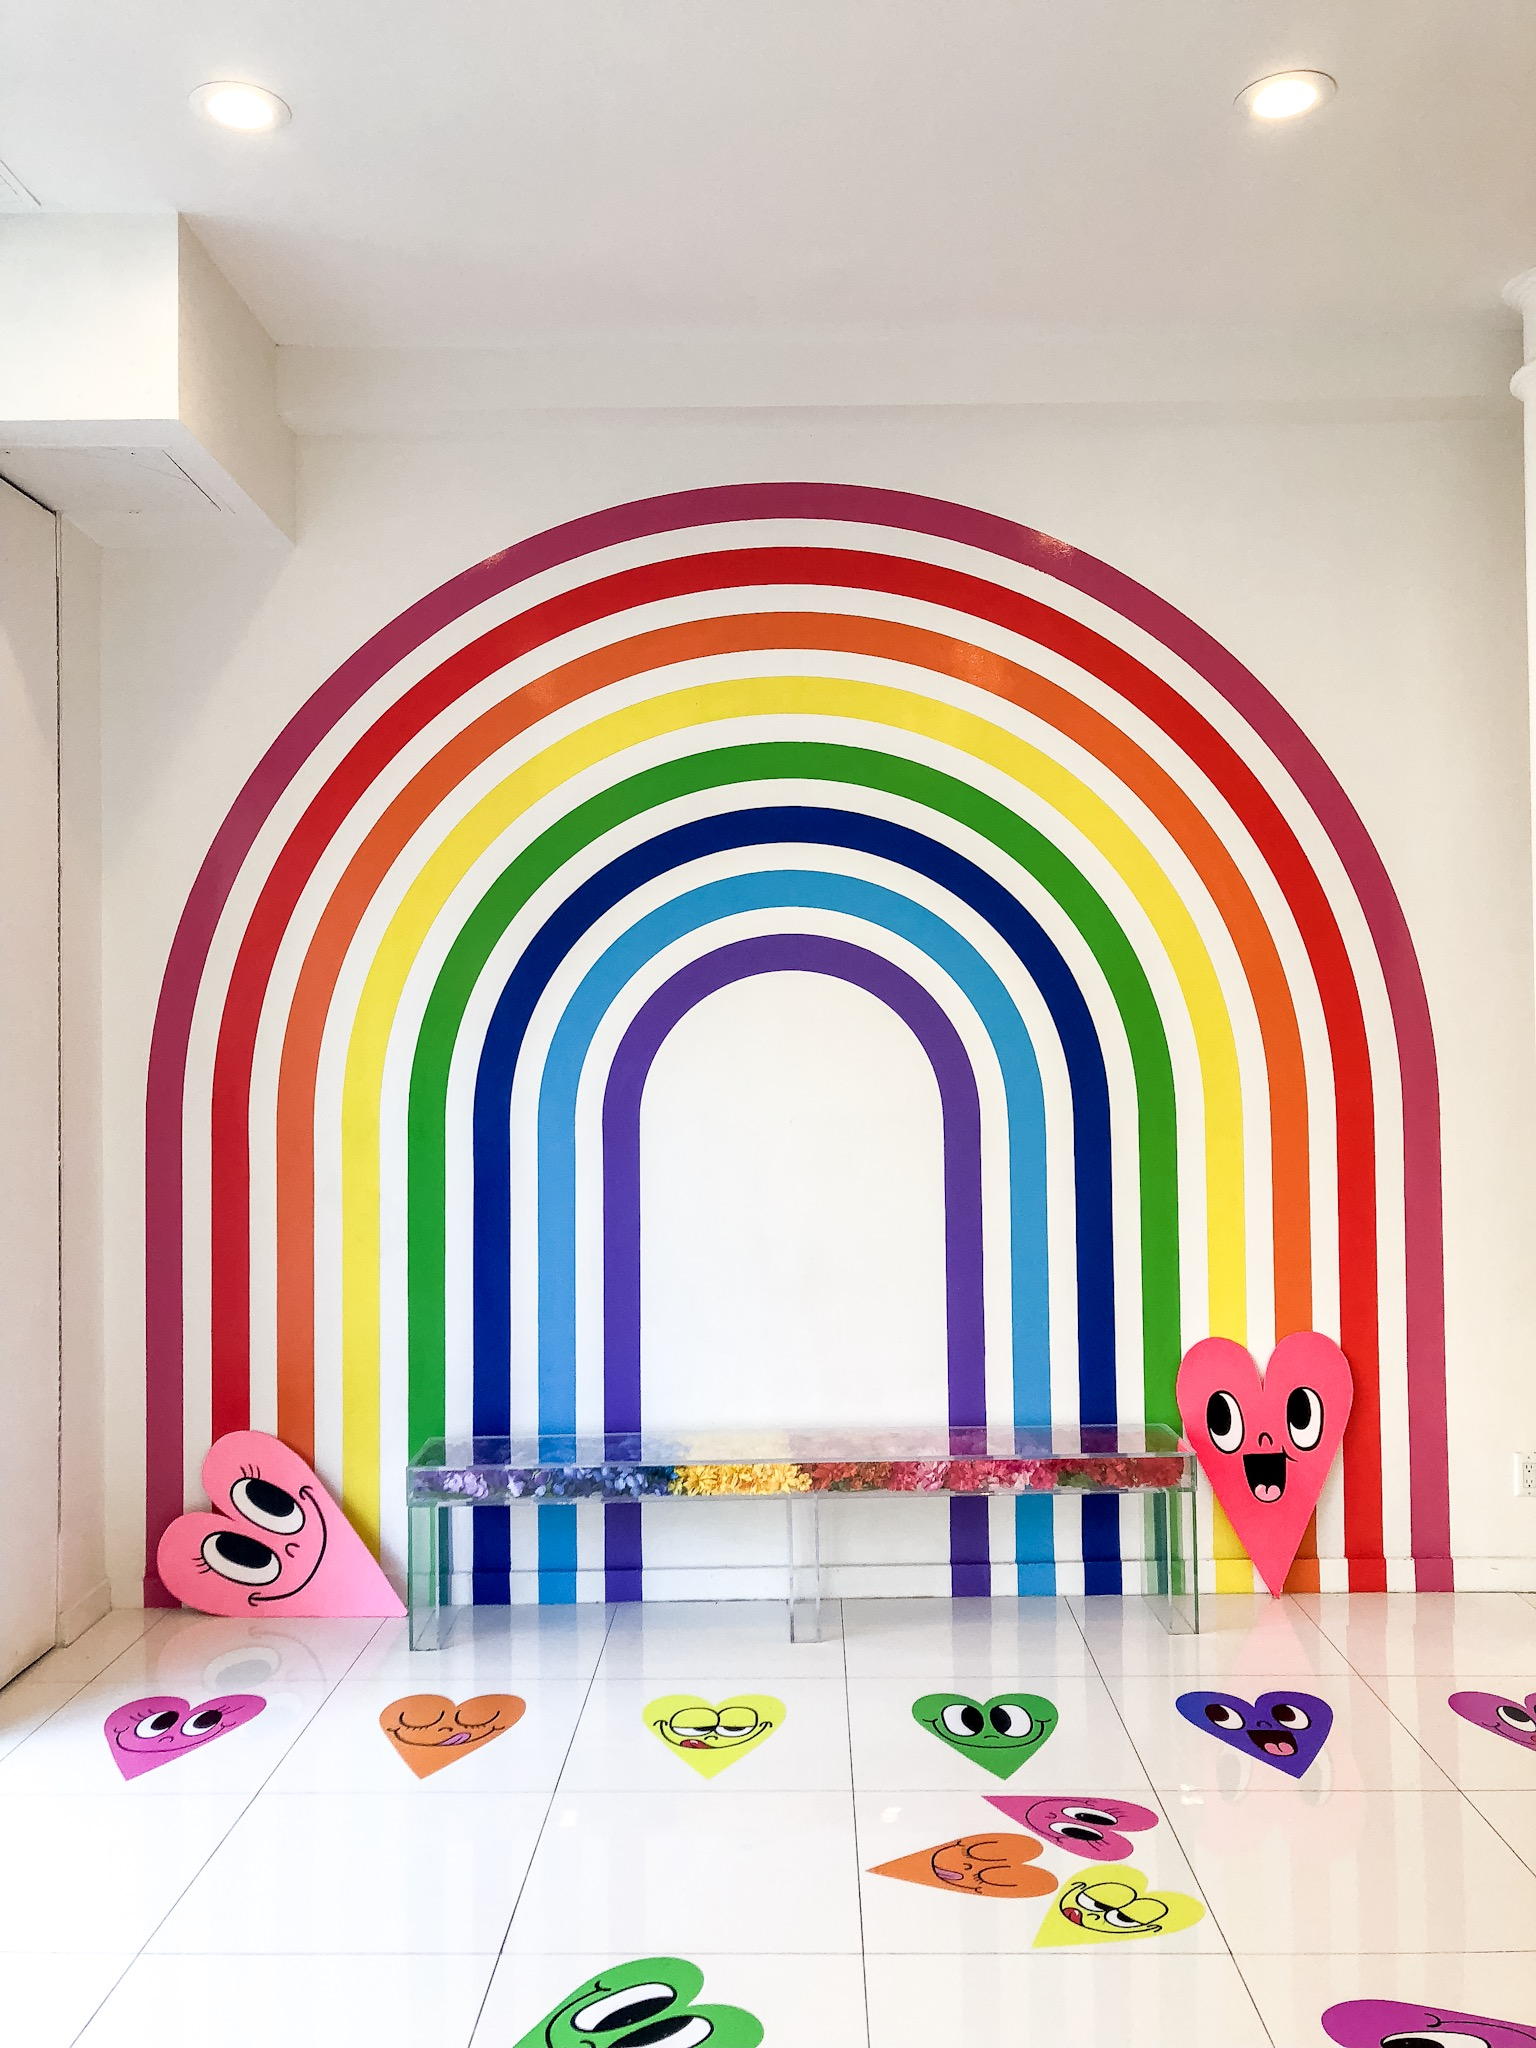 Most Instagrammable Spots in SoHo - flour shop nyc rainbows and hearts